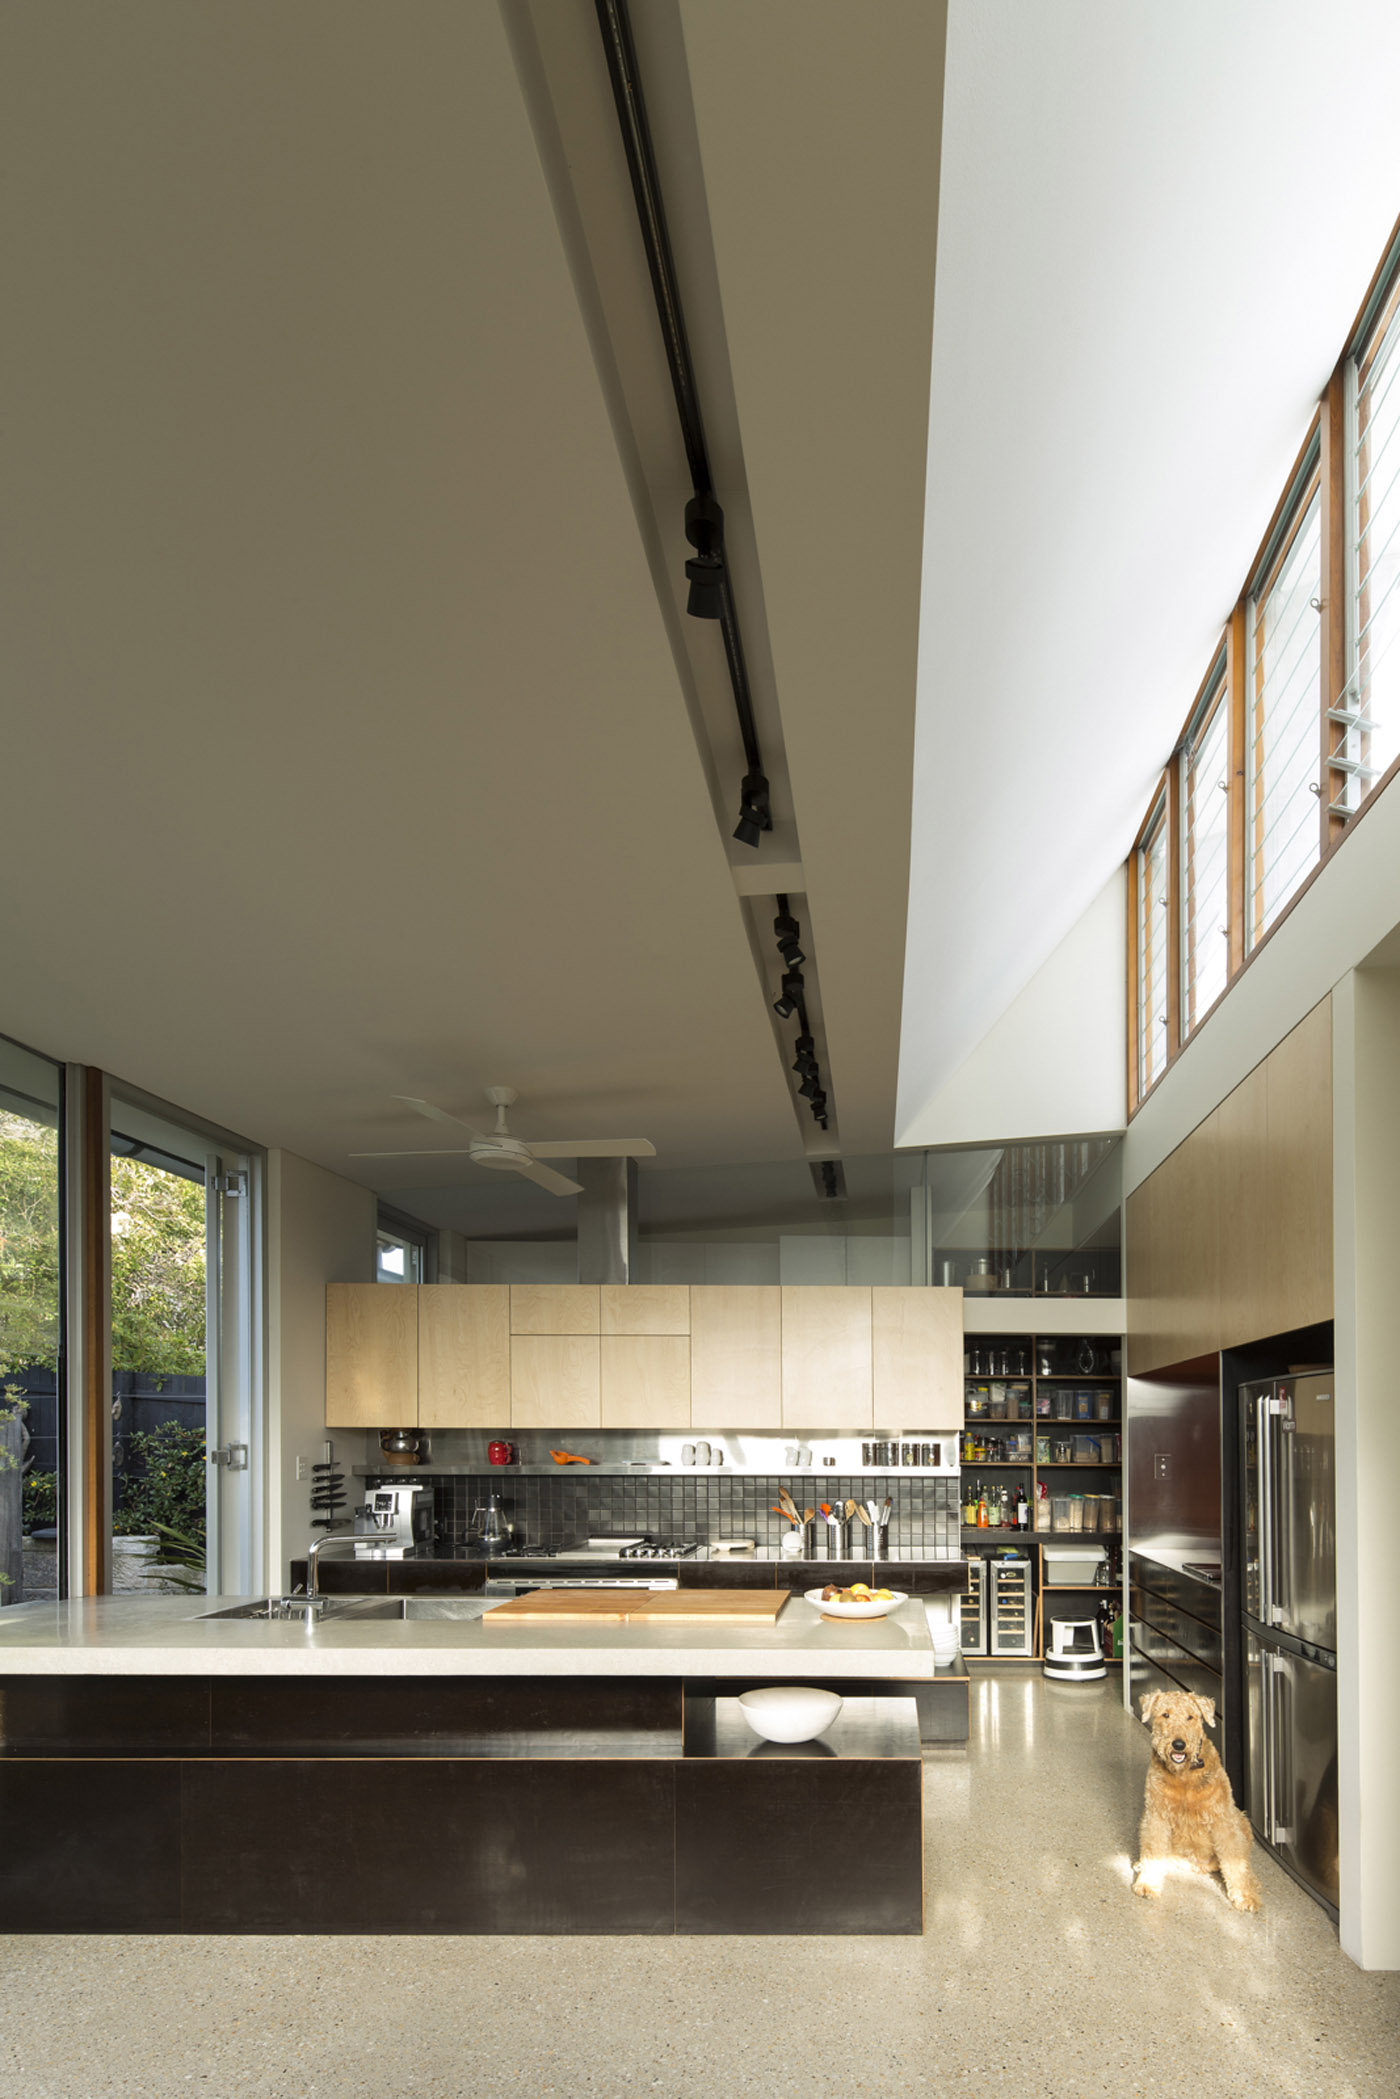 Salgo Kitching House by Sydney award winning architecture office Sam Crawford Architects. Celestial windows allow sunlight penetration to the interior.